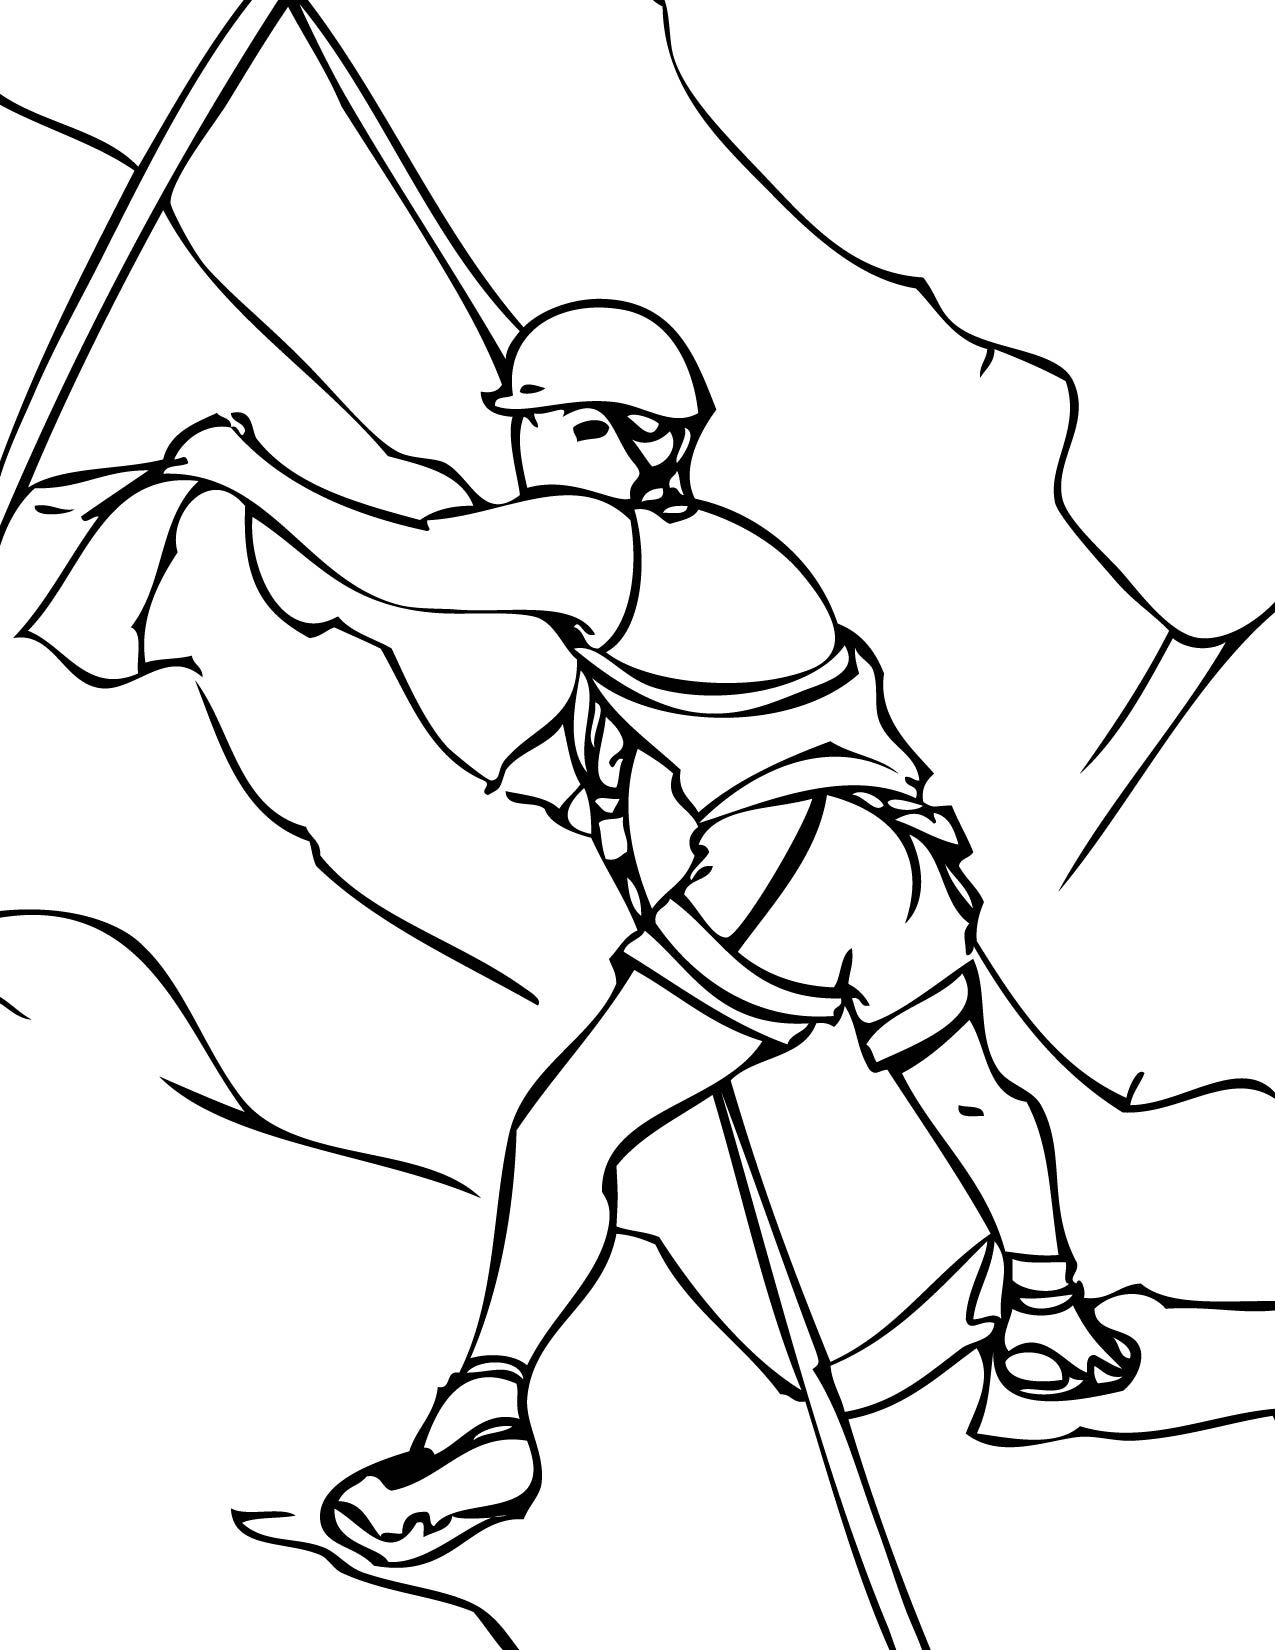 Rock Climbing Handipoints Coloring Page Sports Coloring Pages